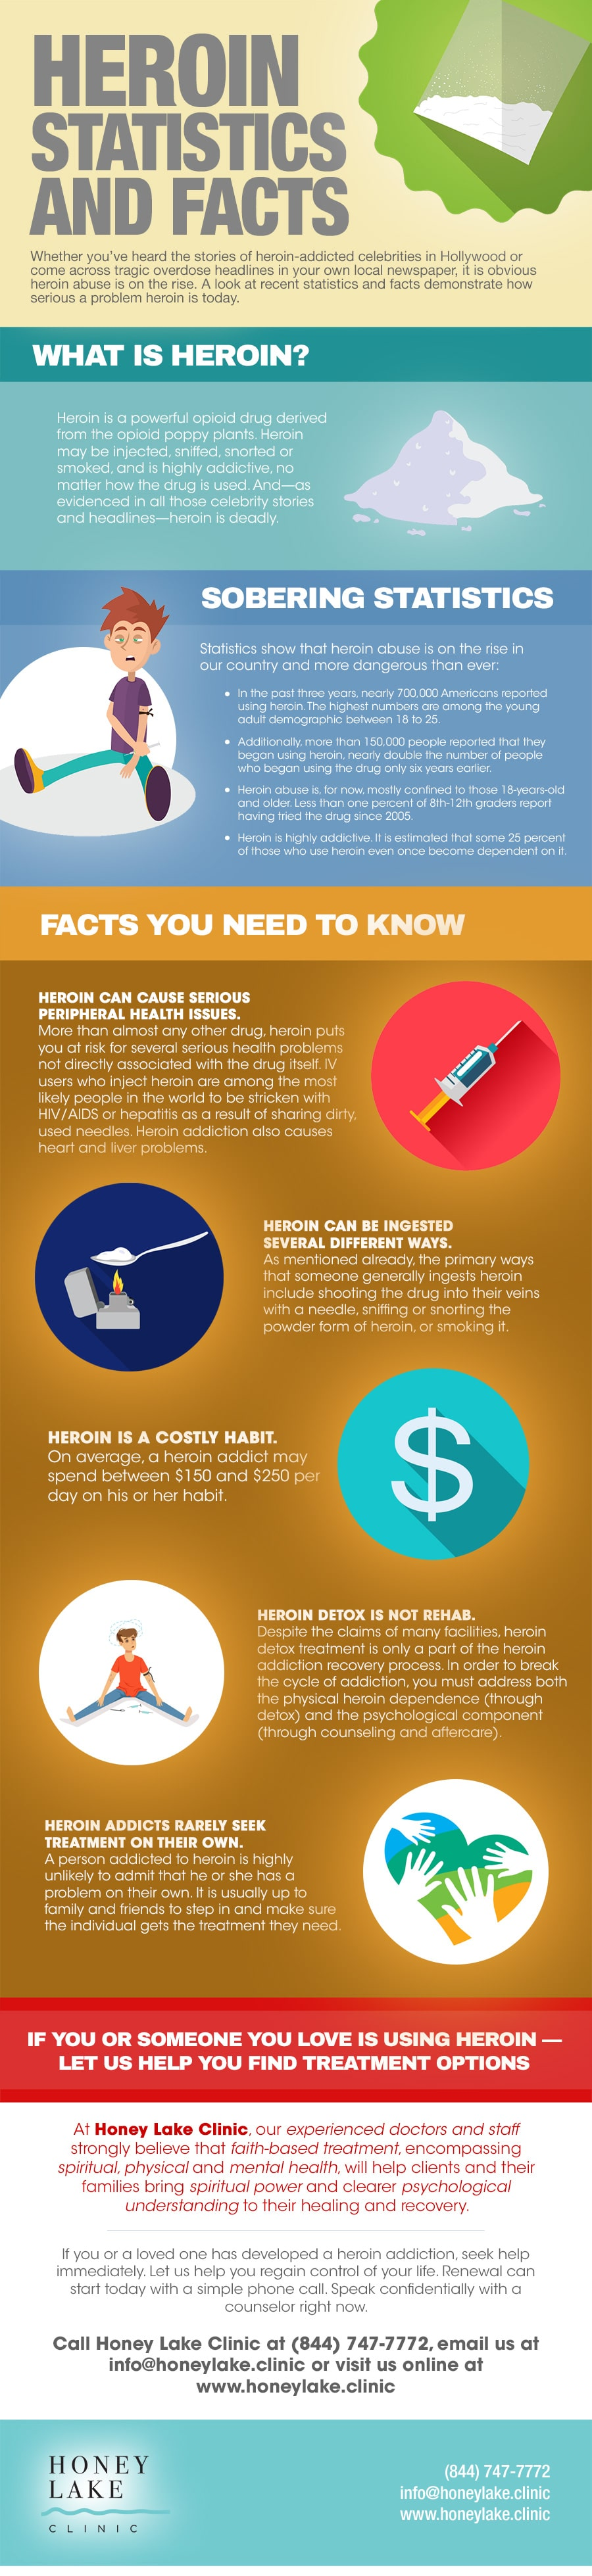 Heroin Statistics and Facts